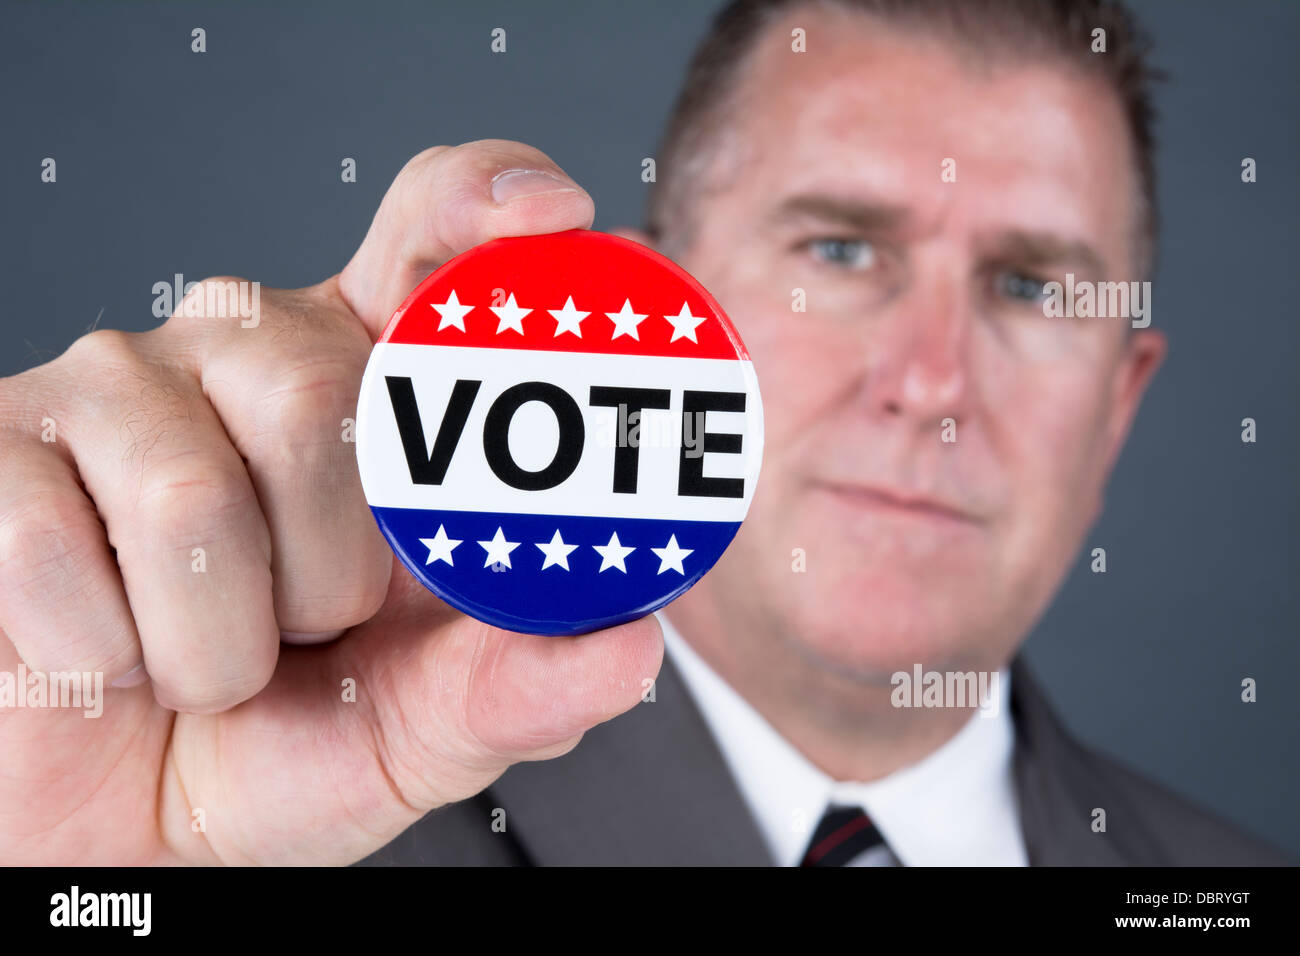 A male voter holds up a vote pin to promote democratic elections in the United States - Stock Image